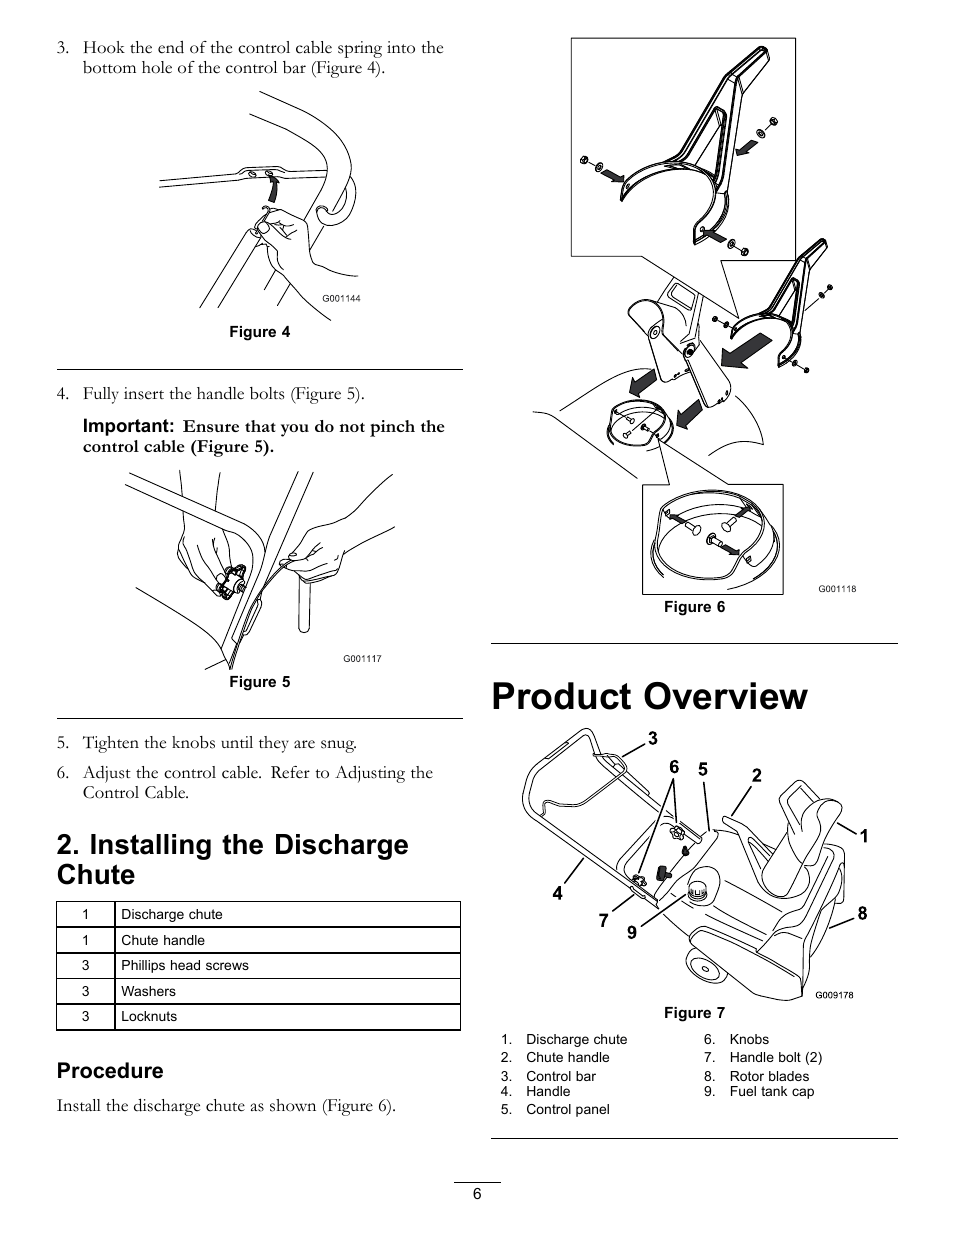 Product overview, Installing the discharge chute